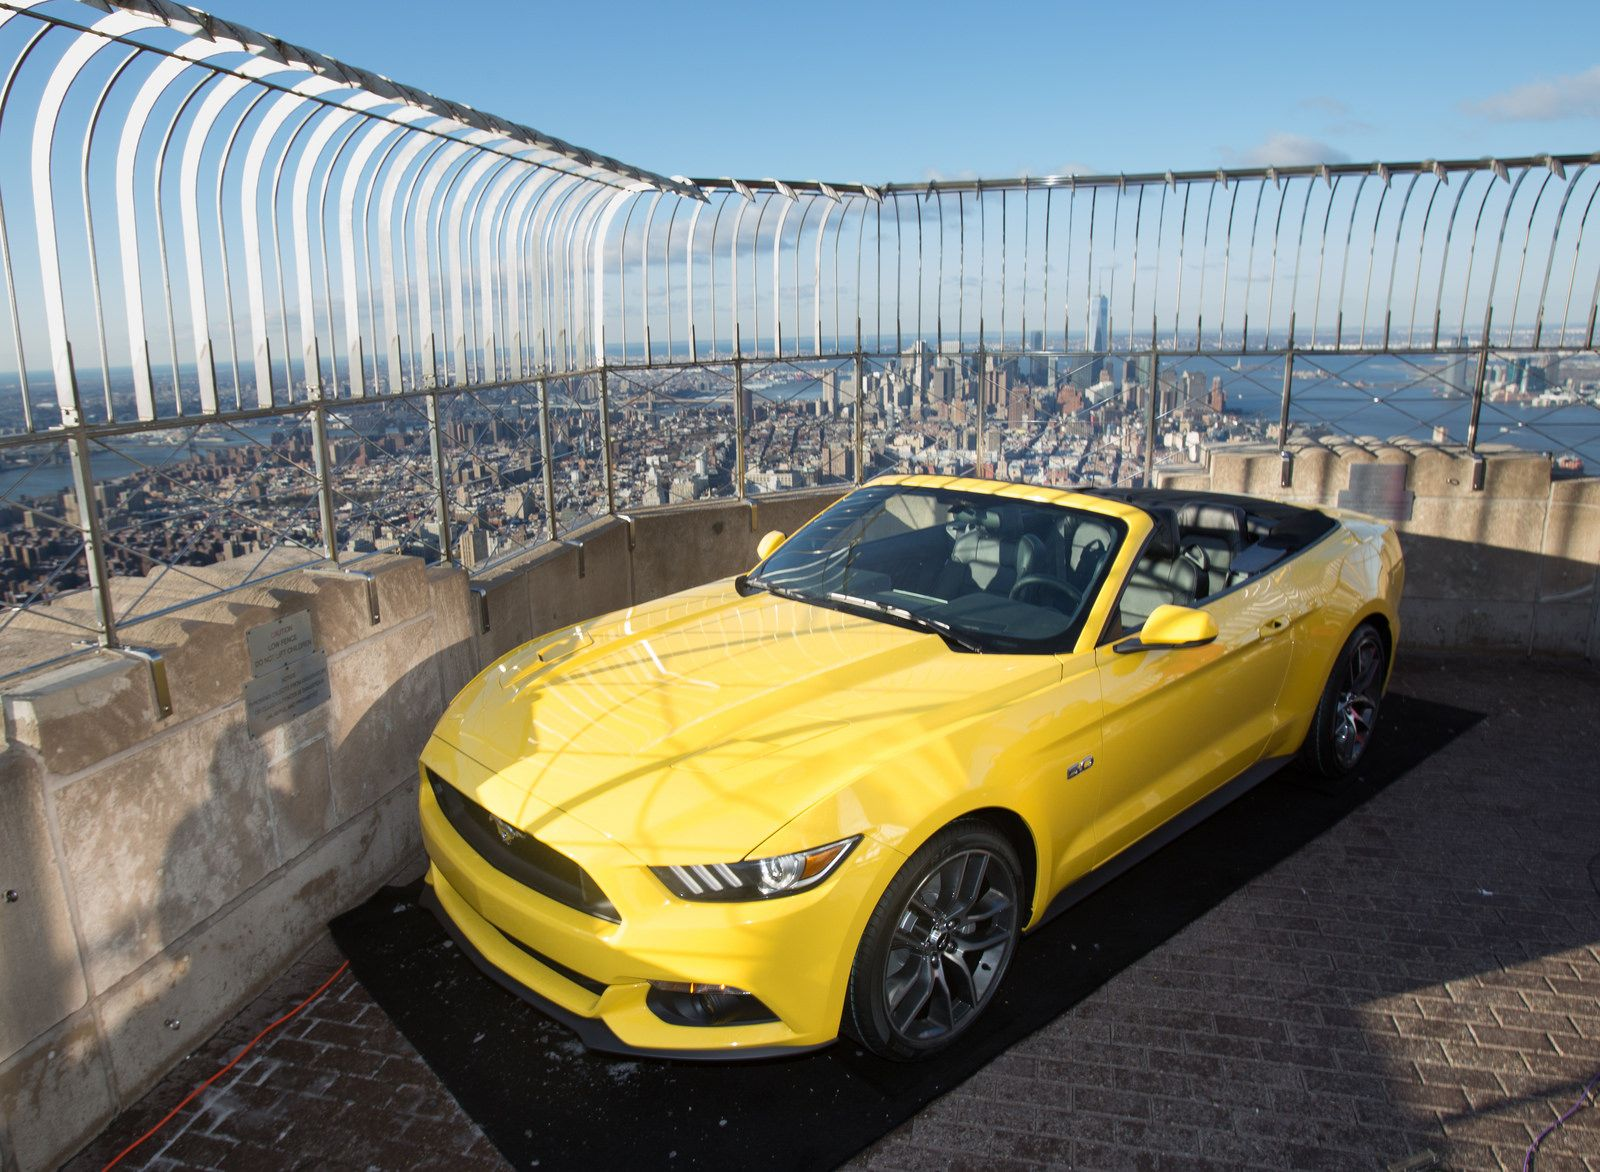 Ford Mustang 2014 compie 50 anni